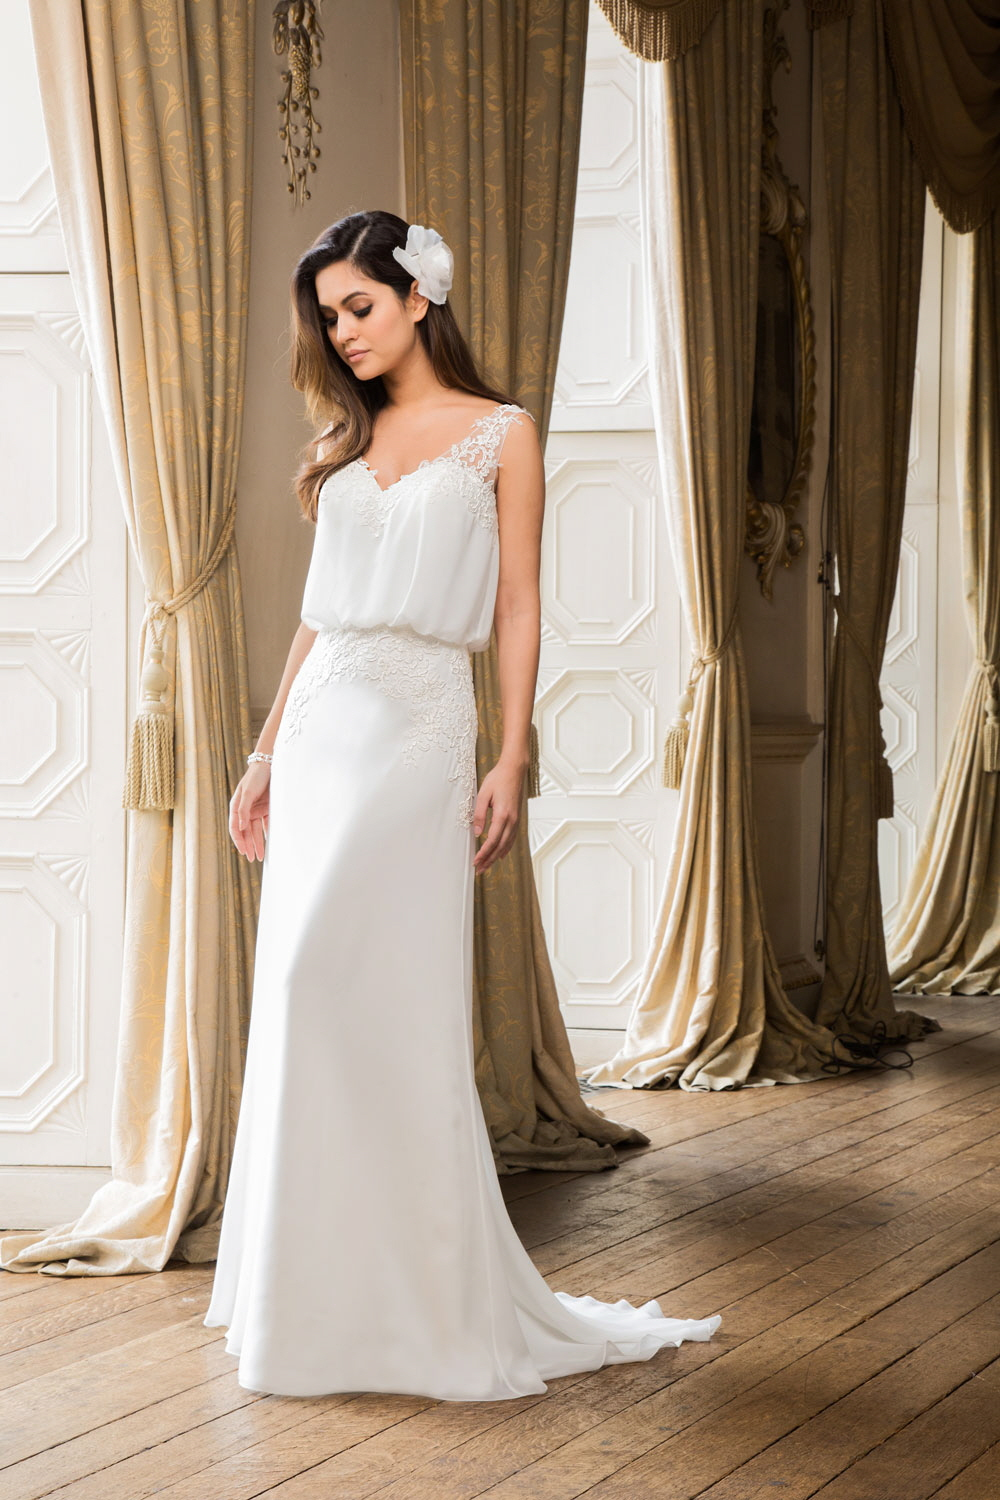 Special Day E16609 | Simple Elegant Wedding Dress | Affordable Gown